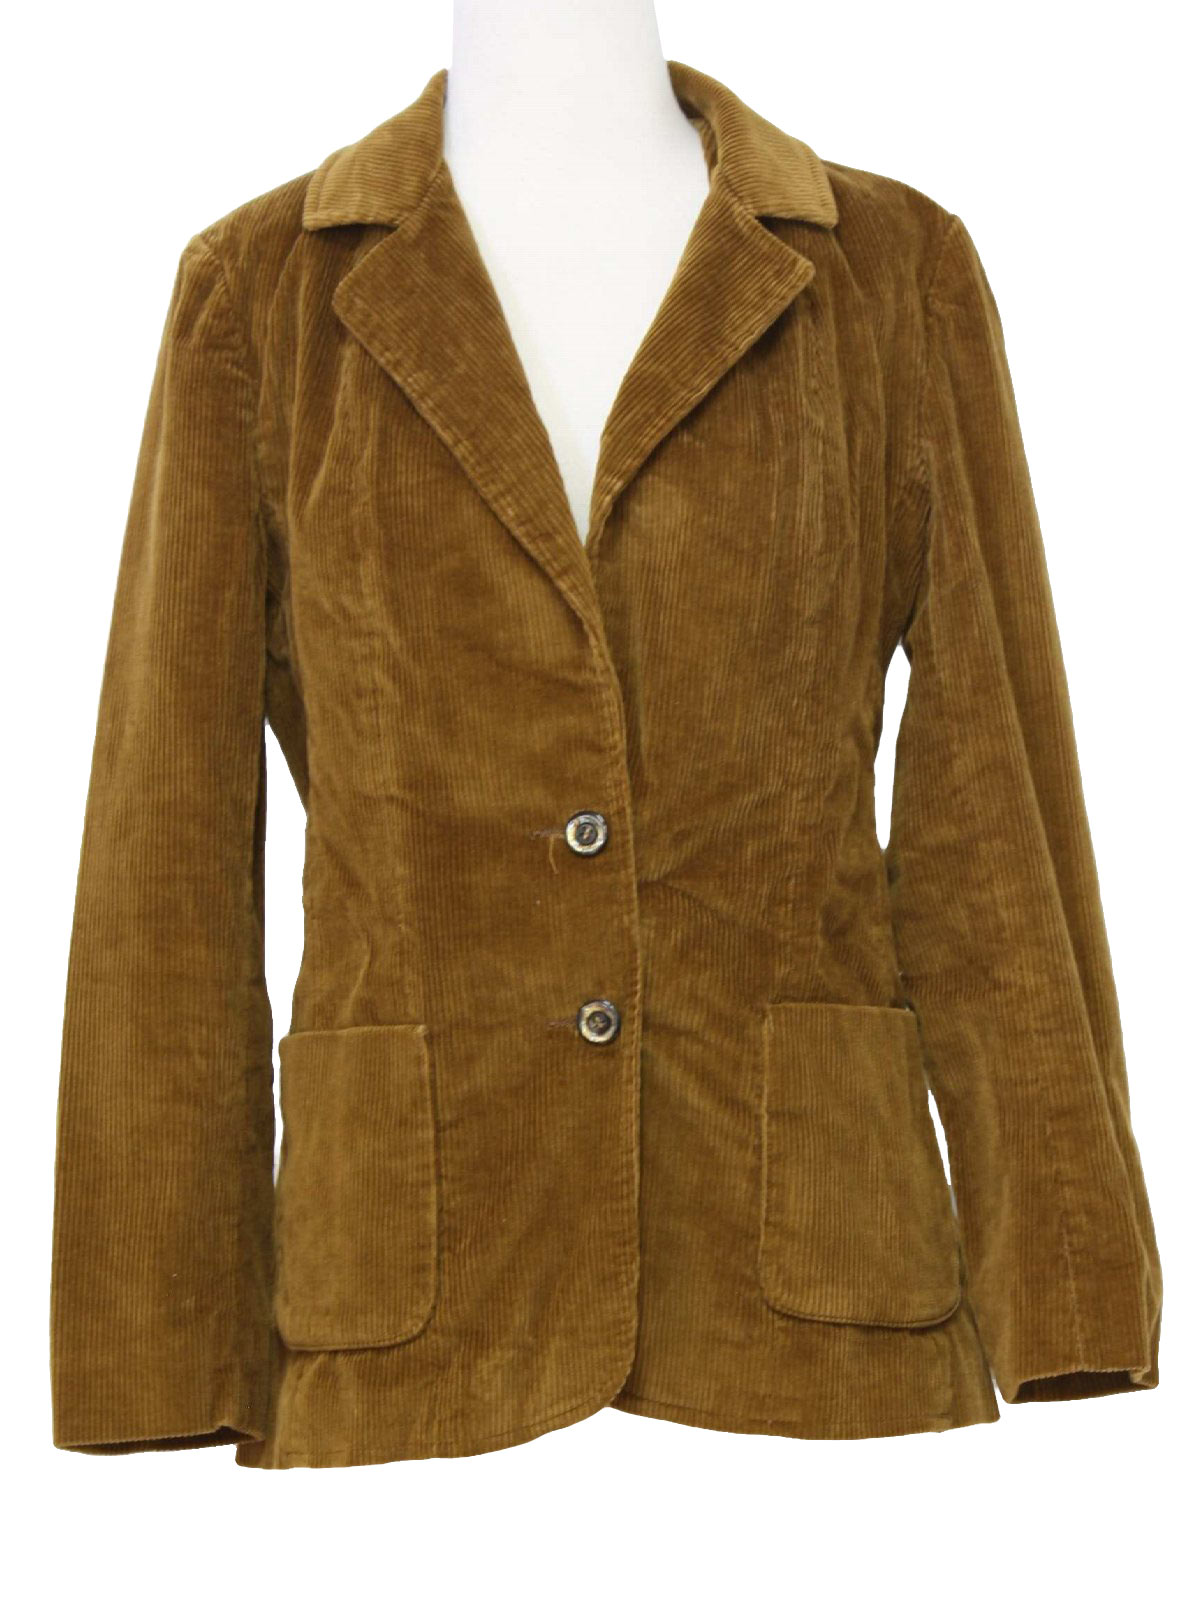 Shop eBay for great deals on erawtoir.ga Corduroy Suits & Blazers for Women. You'll find new or used products in erawtoir.ga Corduroy Suits & Blazers for Women on eBay. Free shipping on selected items.